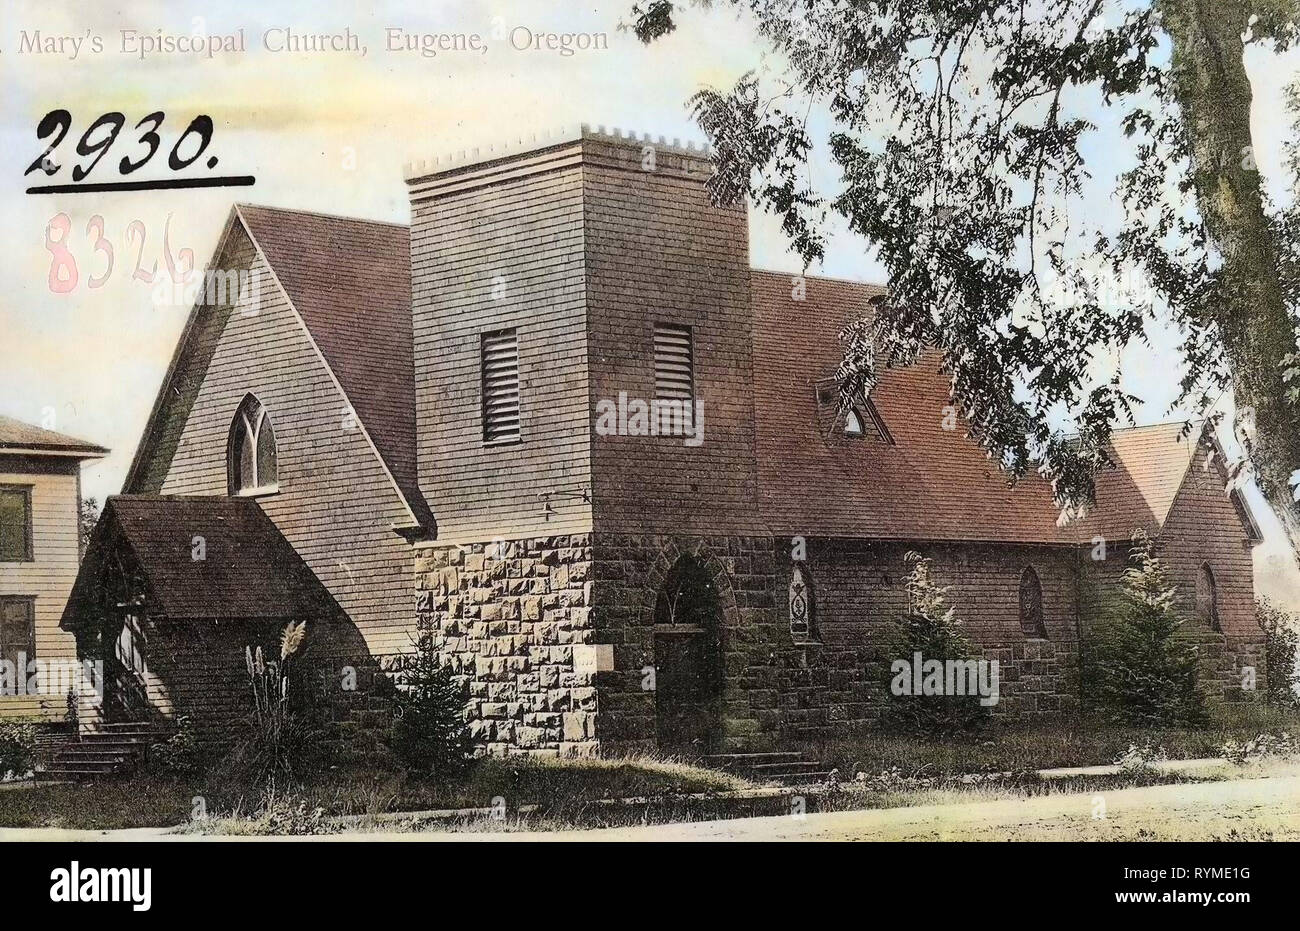 Churches in the Episcopal Diocese of Oregon, Buildings in Eugene, Oregon, 1906, Eugene, Ore, St. Marys Episcopal Church', United States of America Stock Photo